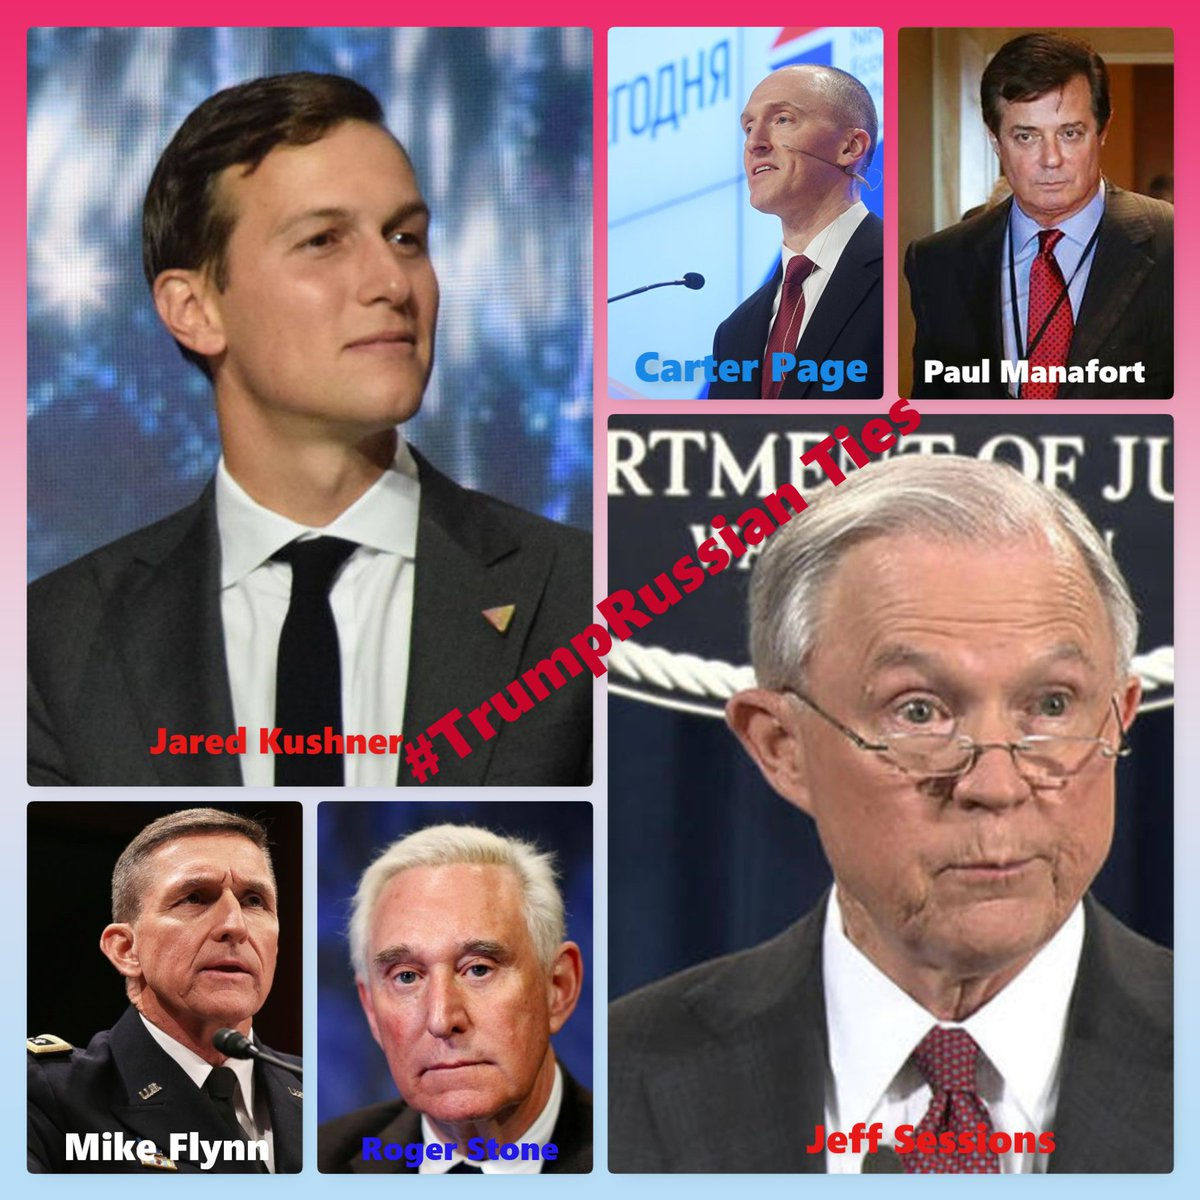 Image result for Images of M. Flynn, Kushner, Manafort, Pege Carter